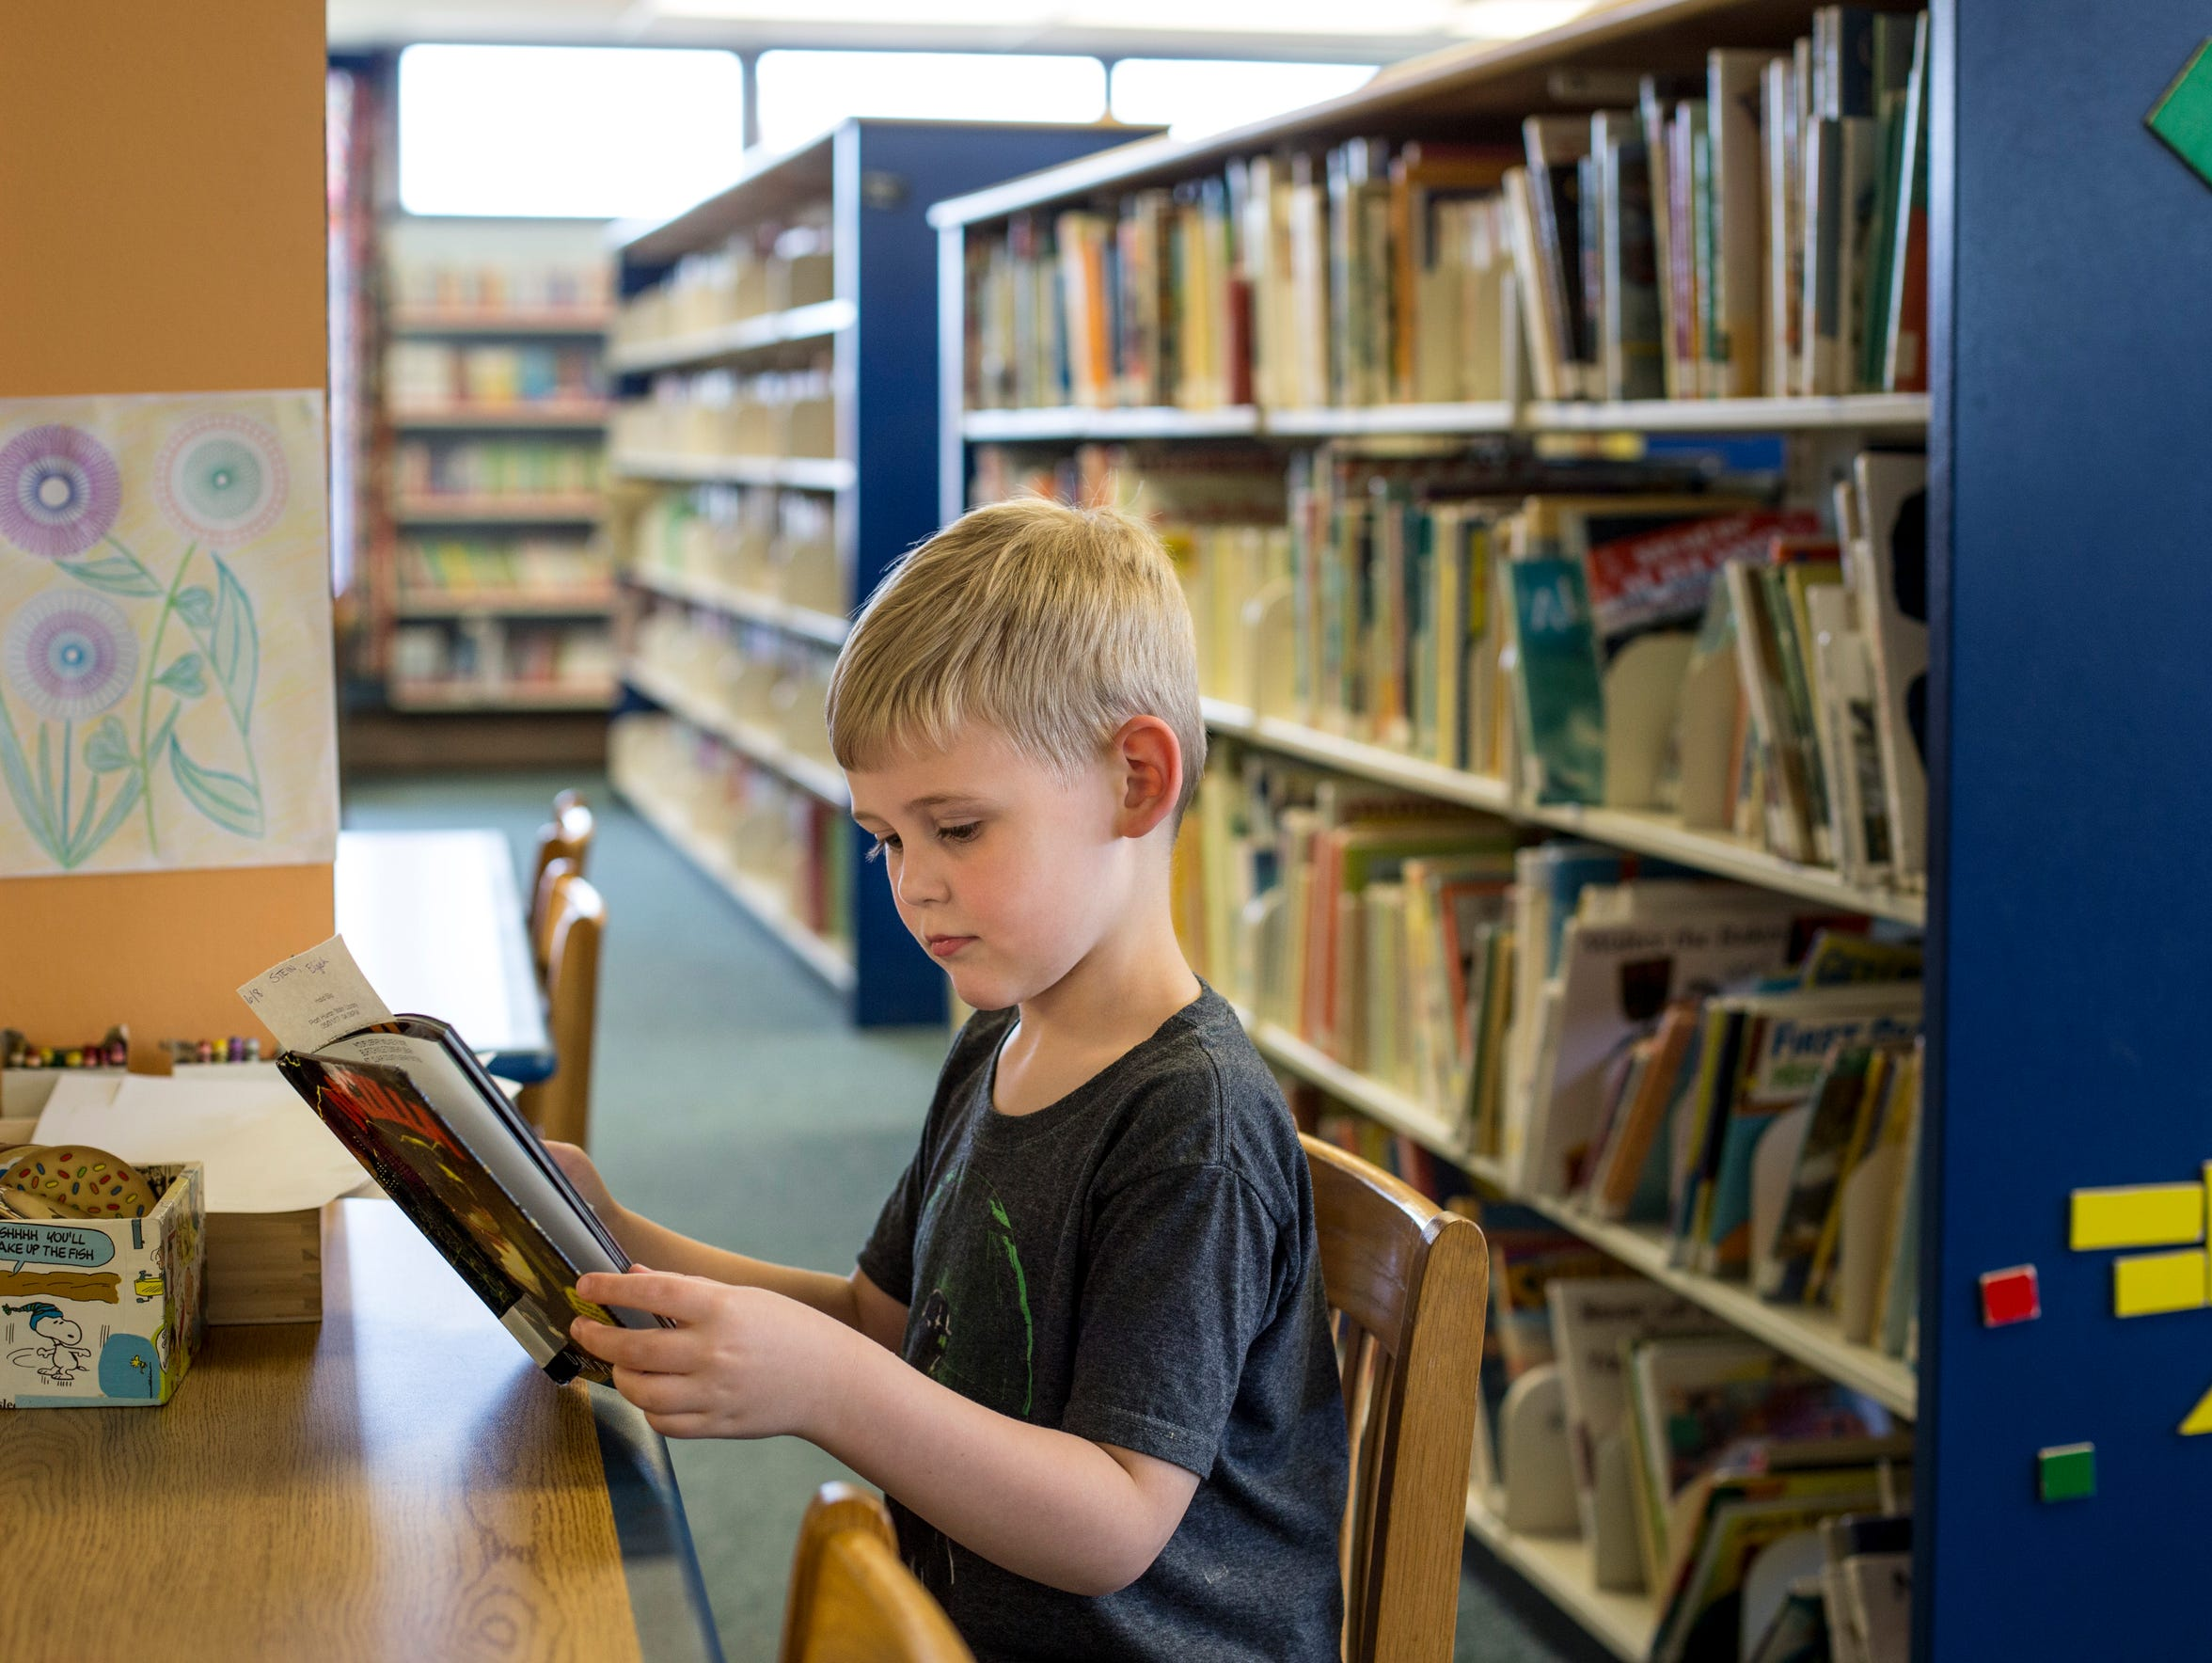 Eli Stein, 6, reads a book while visiting the library